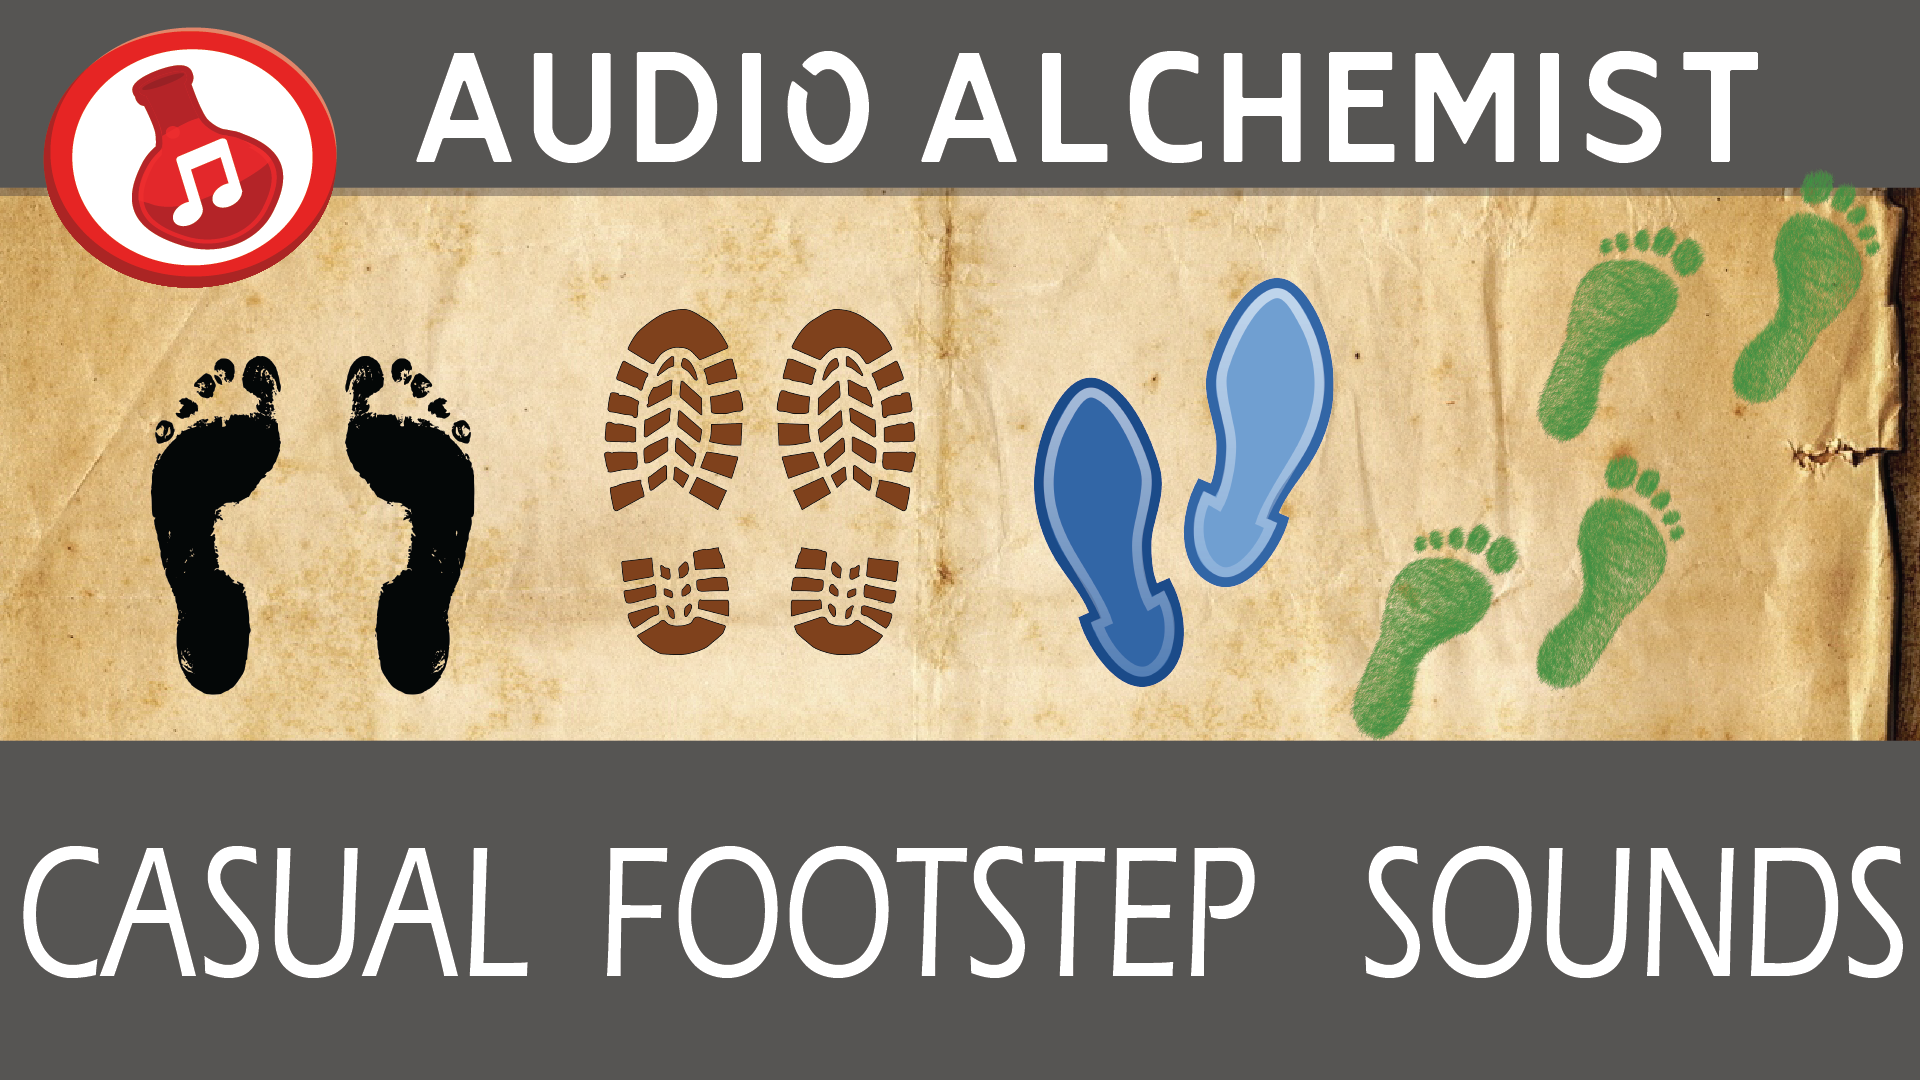 Casual Footsteps Sounds by Audio Alchemist in Sound Effects